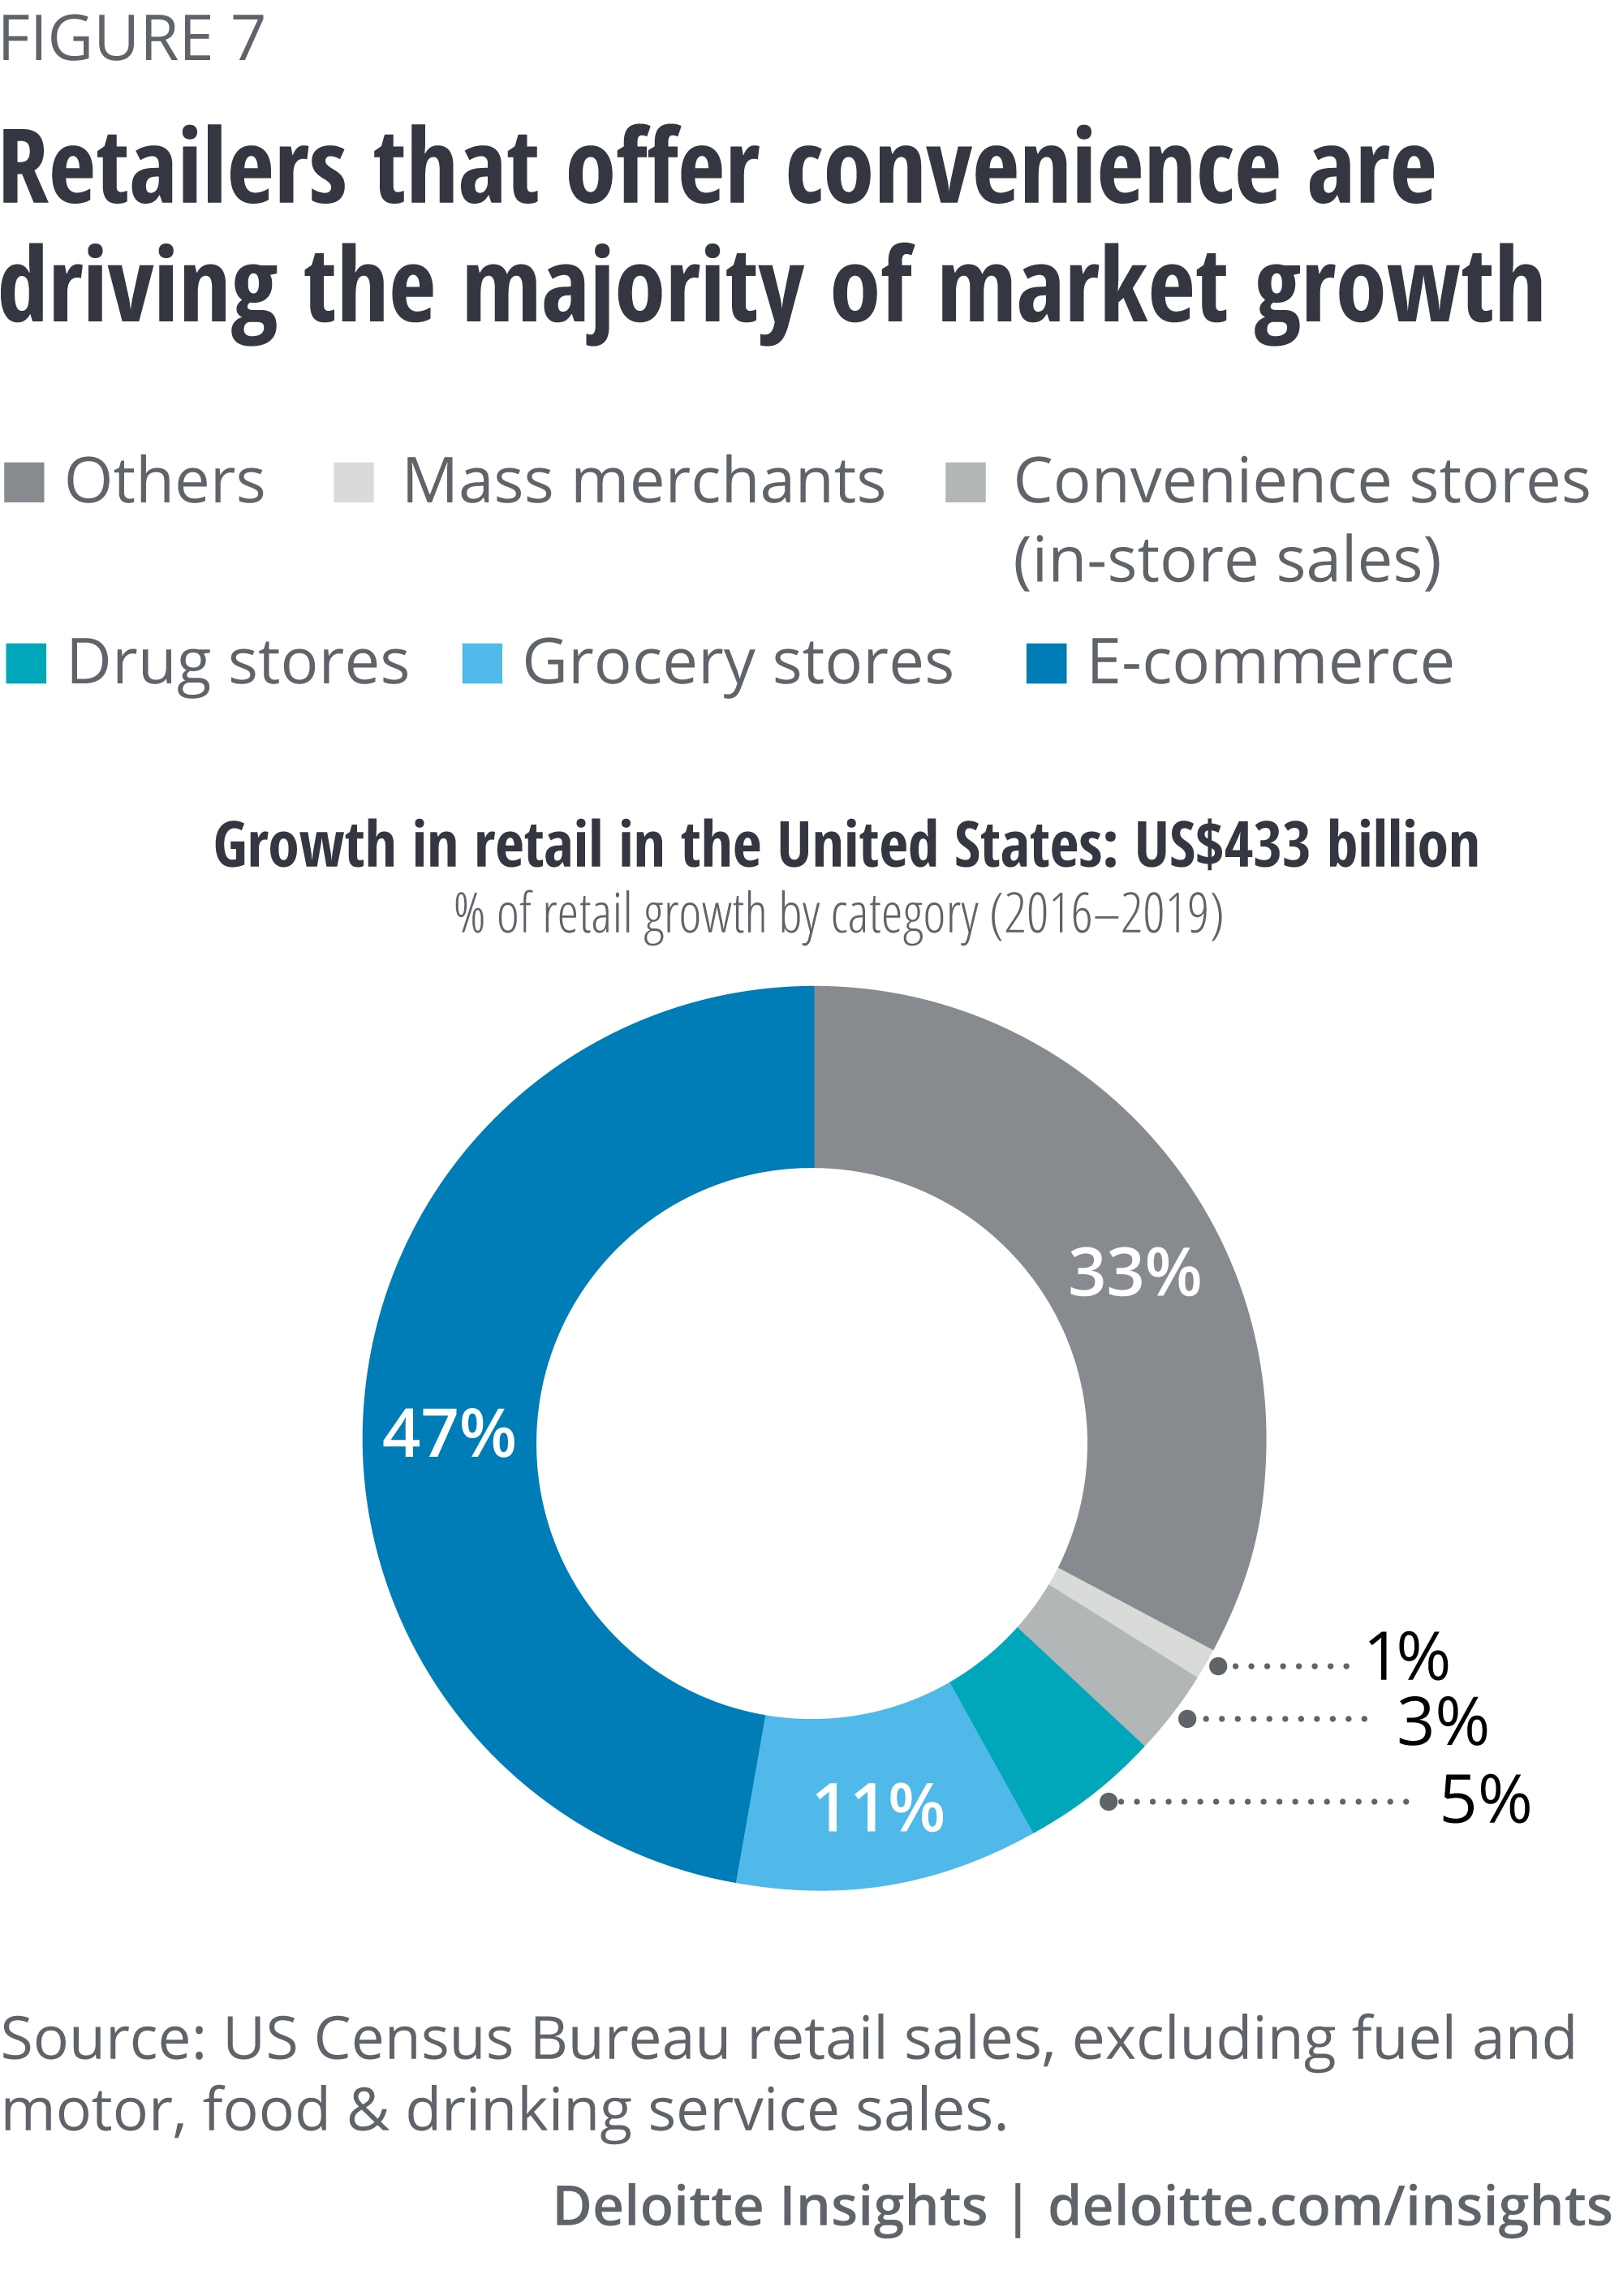 Retailers that offer convenience are driving the majority of market growth